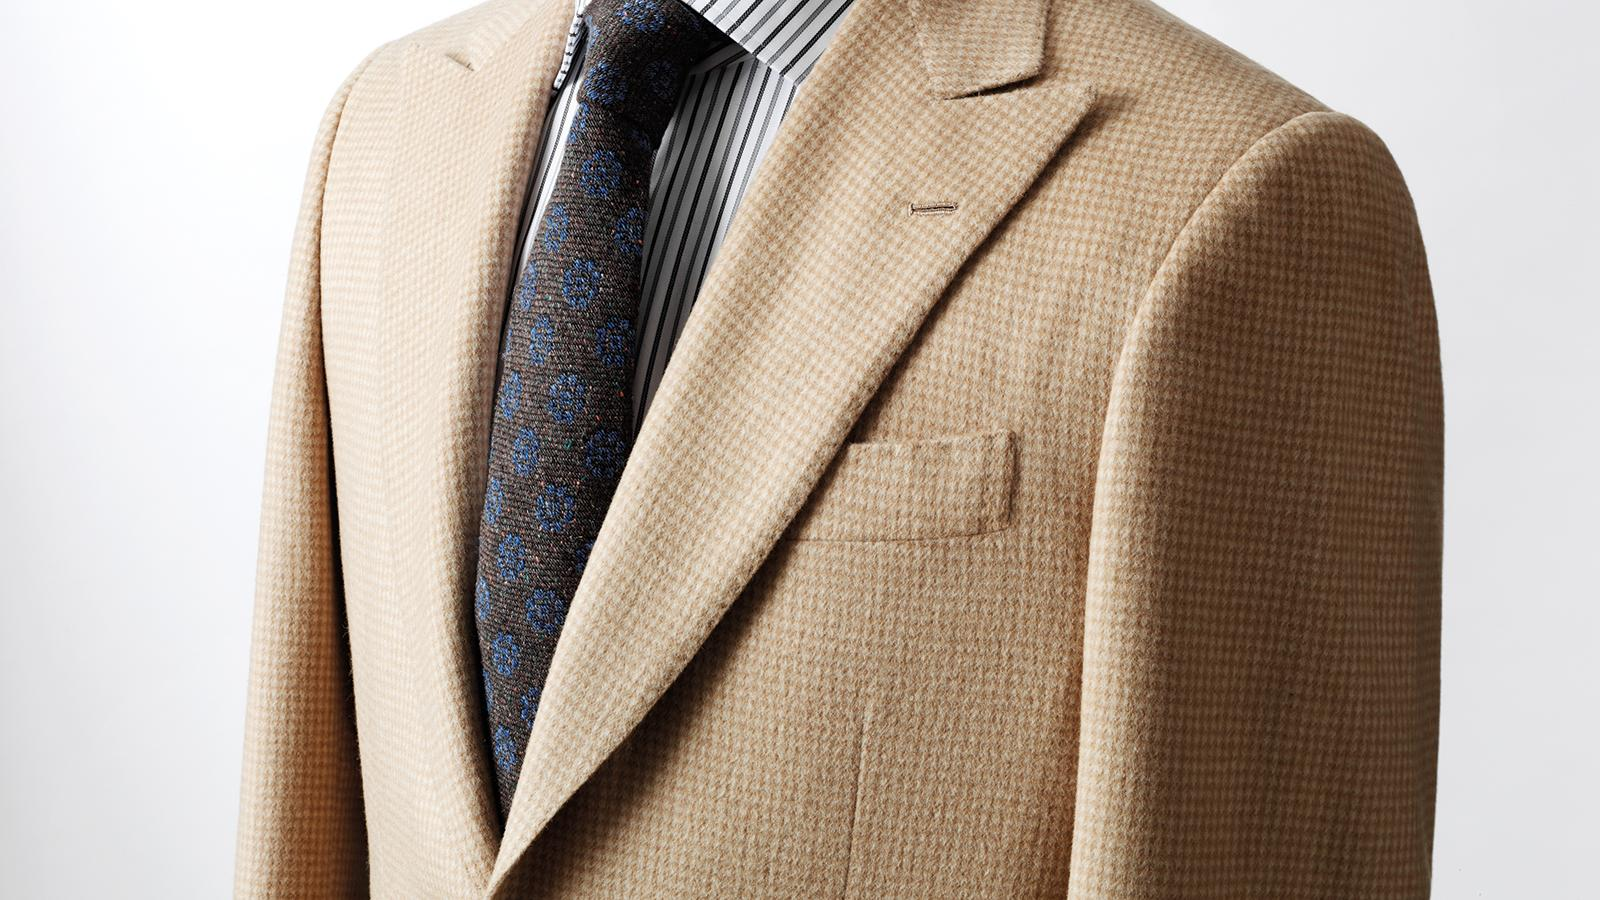 The Camel Hair Jacket